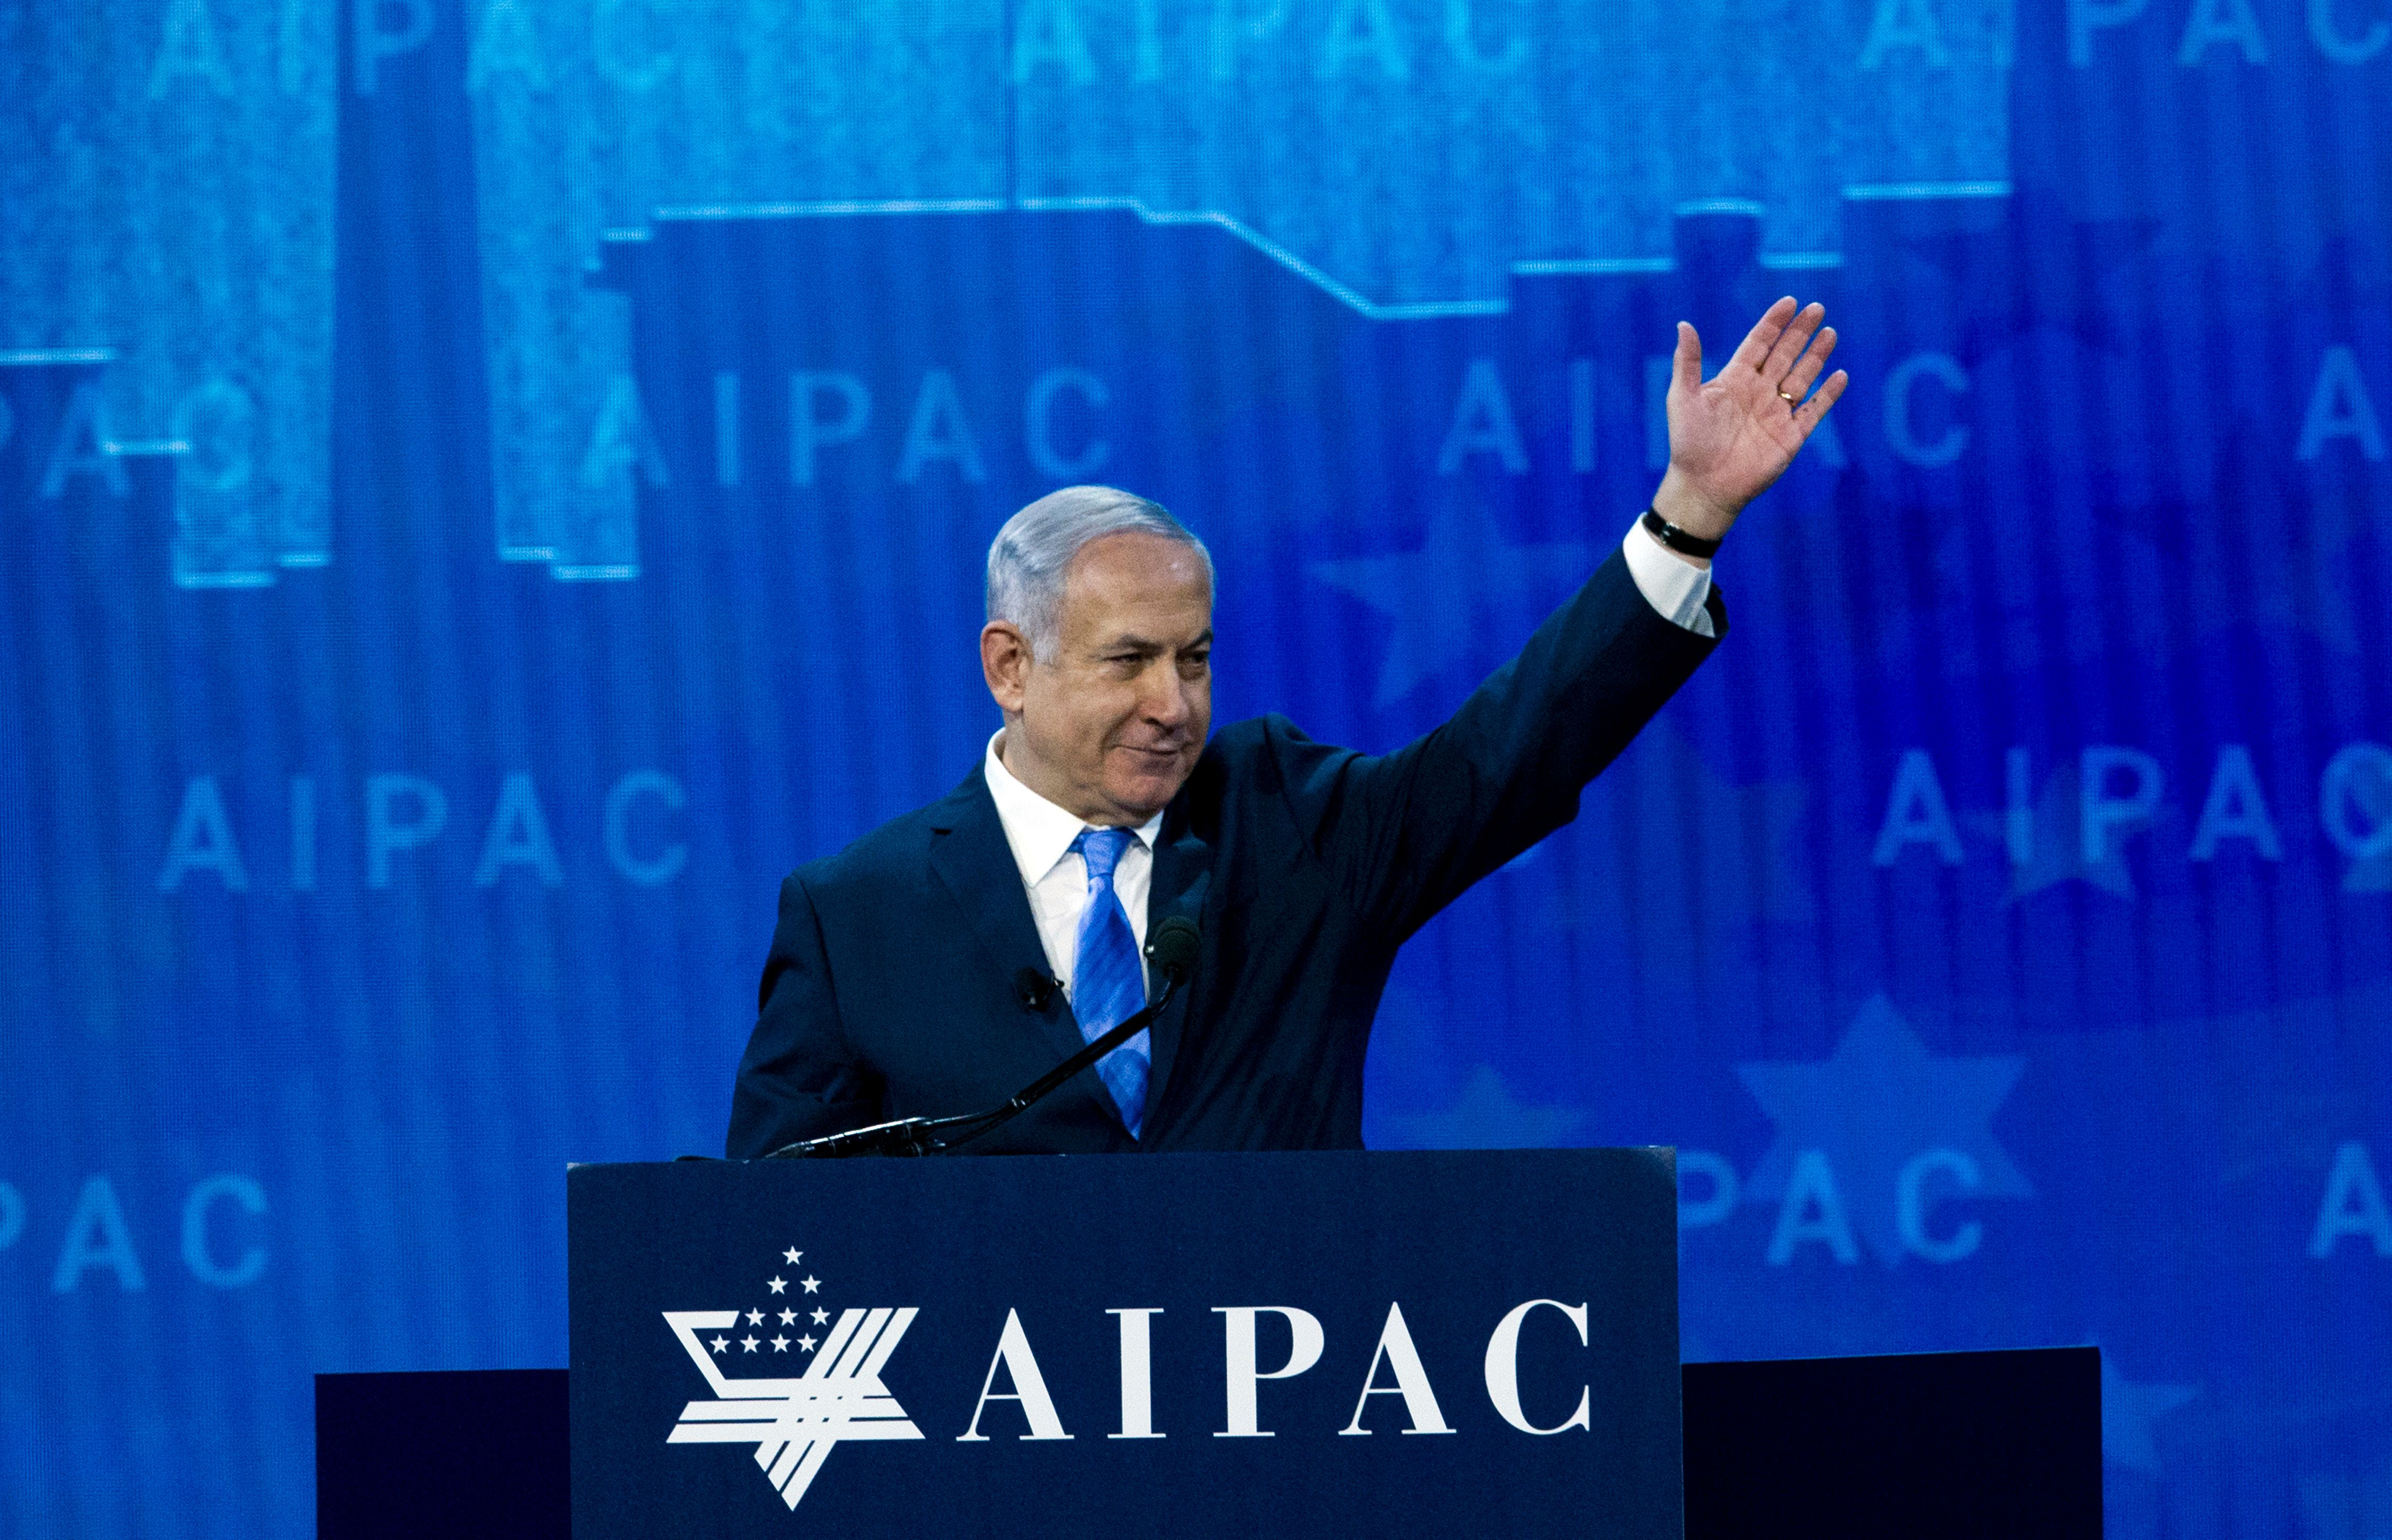 2020 Dems Keep Their Distance From Pro-Israel AIPAC Conference